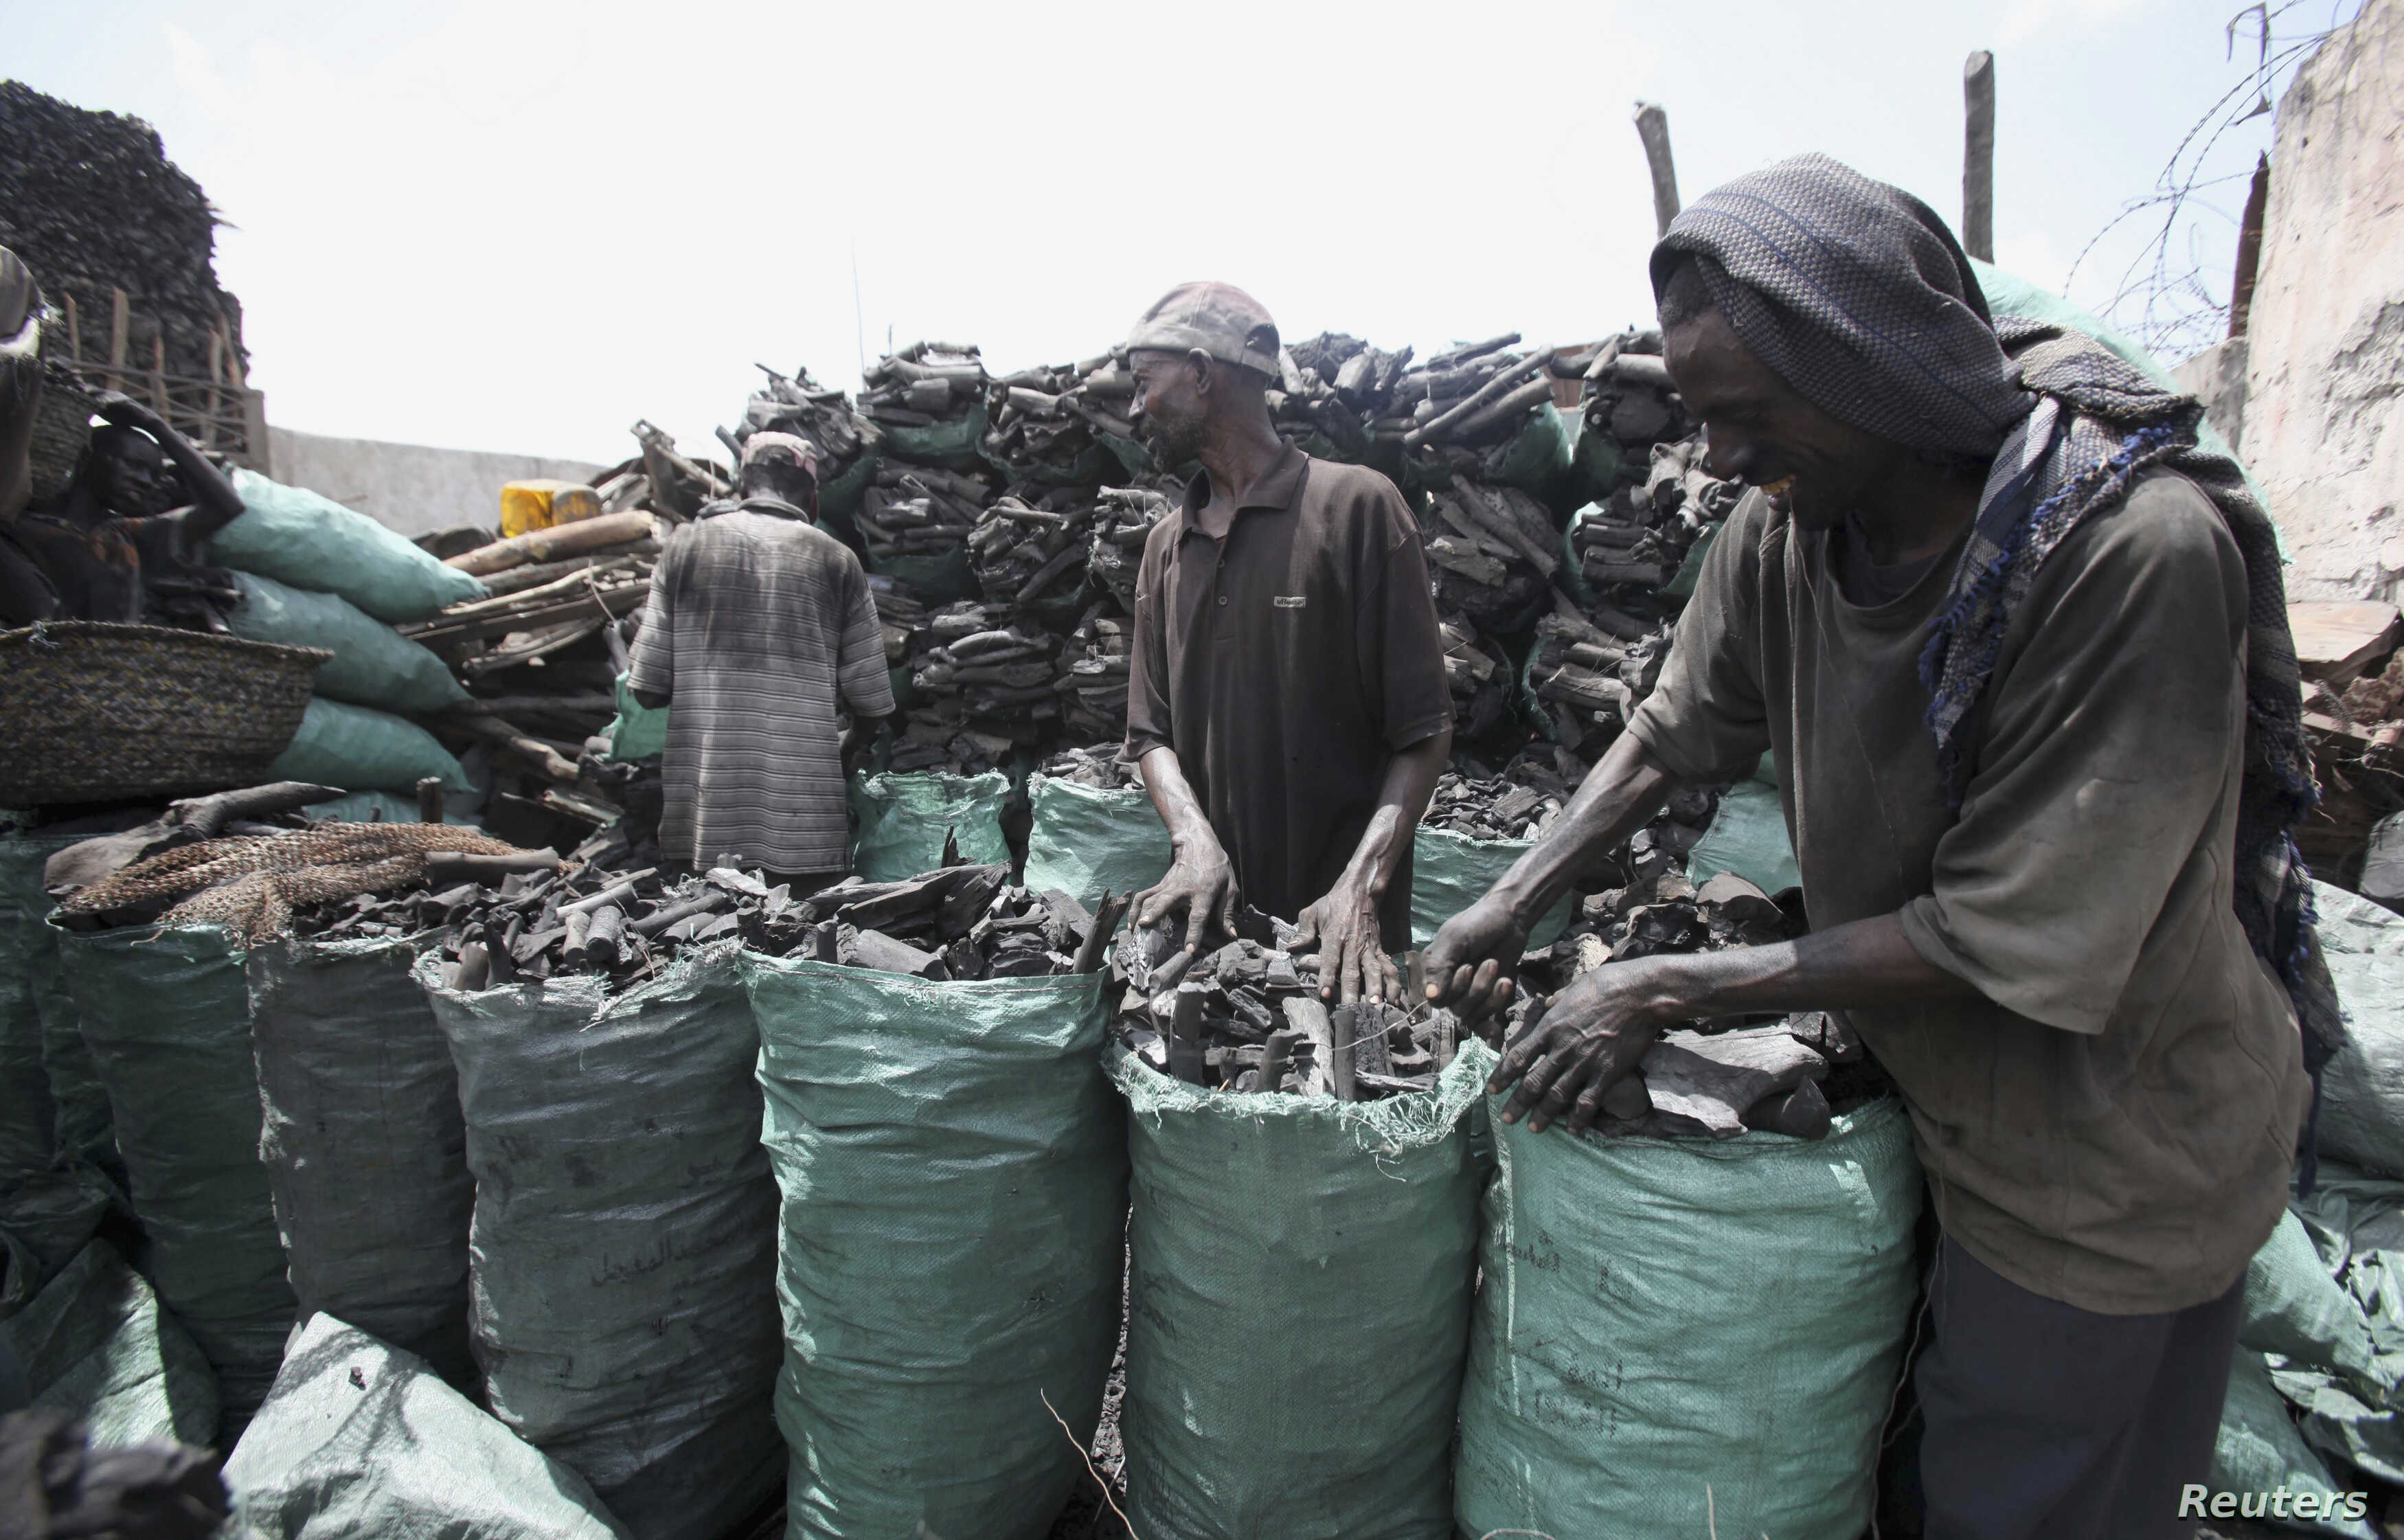 UN: Kenyan Peacekeepers Aided Illegal Somalia Charcoal